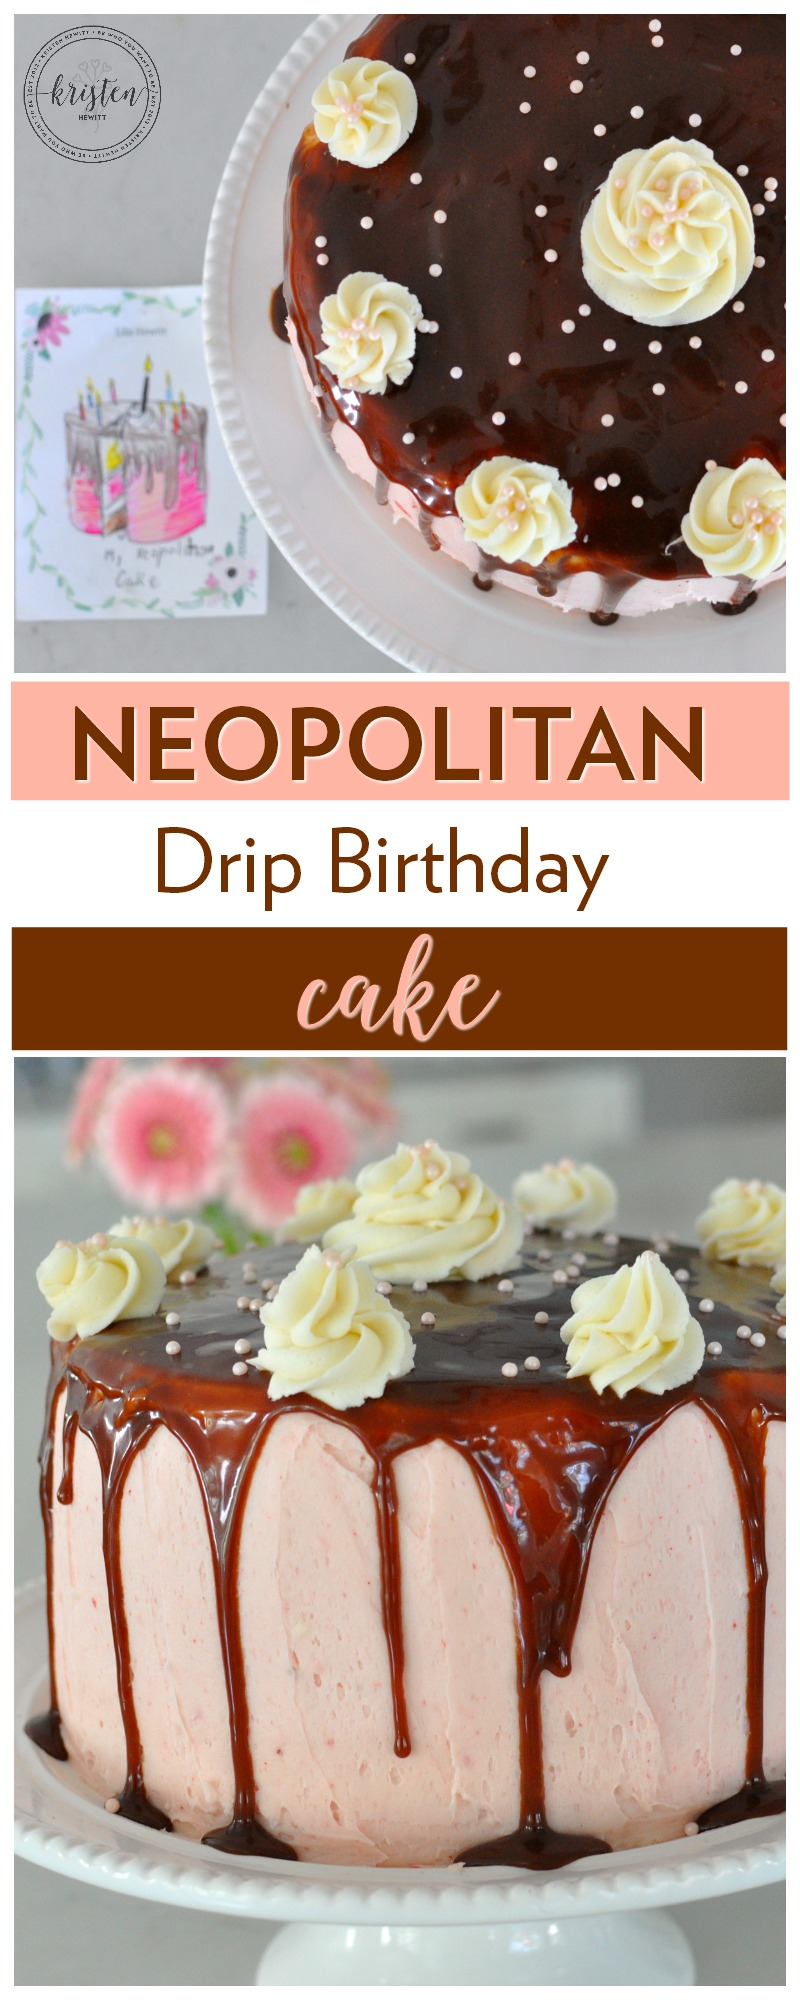 Looking for a unique yet elegant birthday cake? Try this DIY Neapolitan Drip Birthday Cake and surprise your guests with a beautiful dessert!